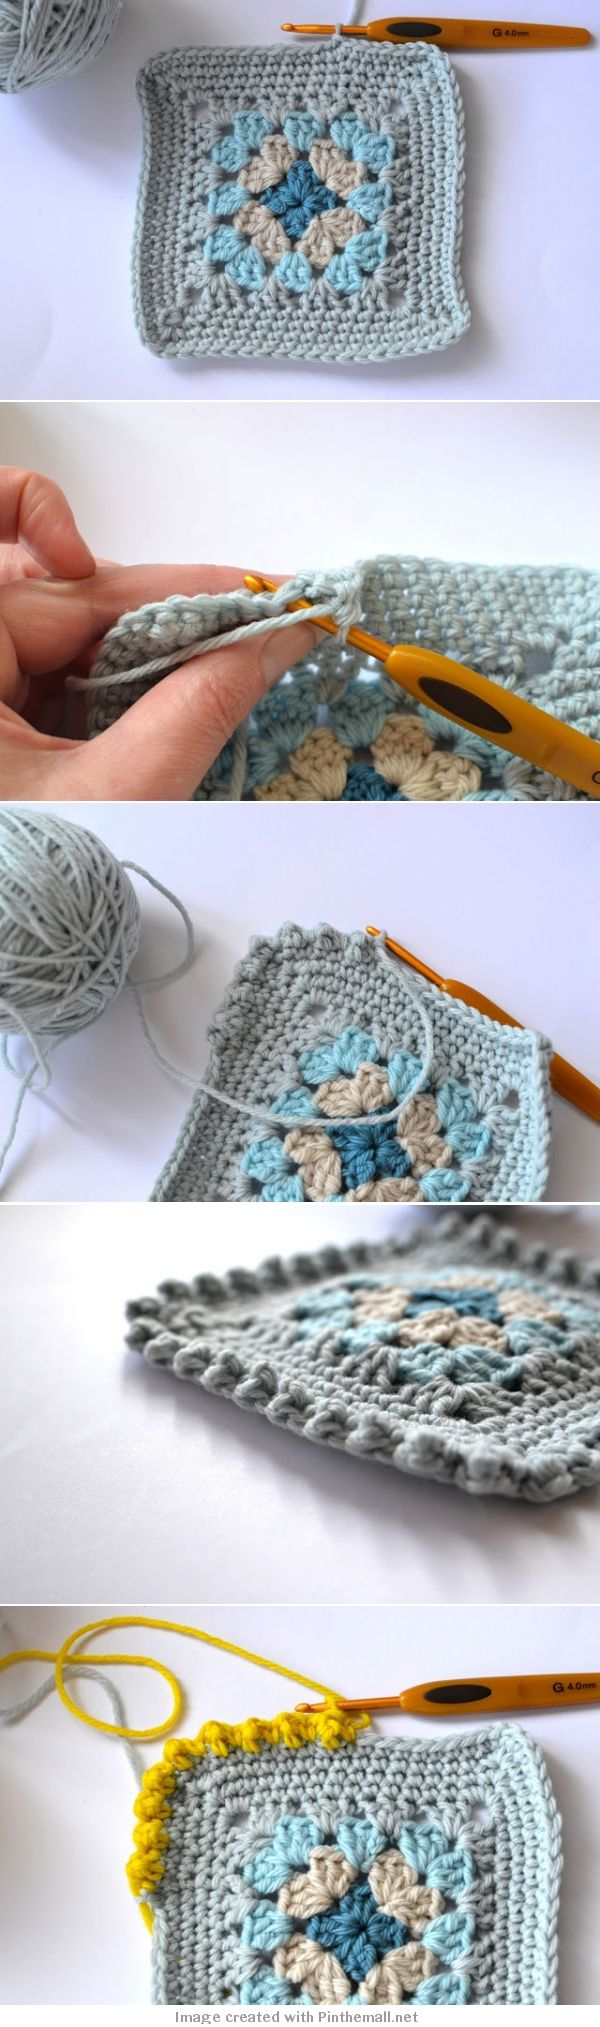 #Crochet #tutorial - Bobble Border Tutorial - Great for a square edging or to use as a border on many other projects - from Dover Madden.